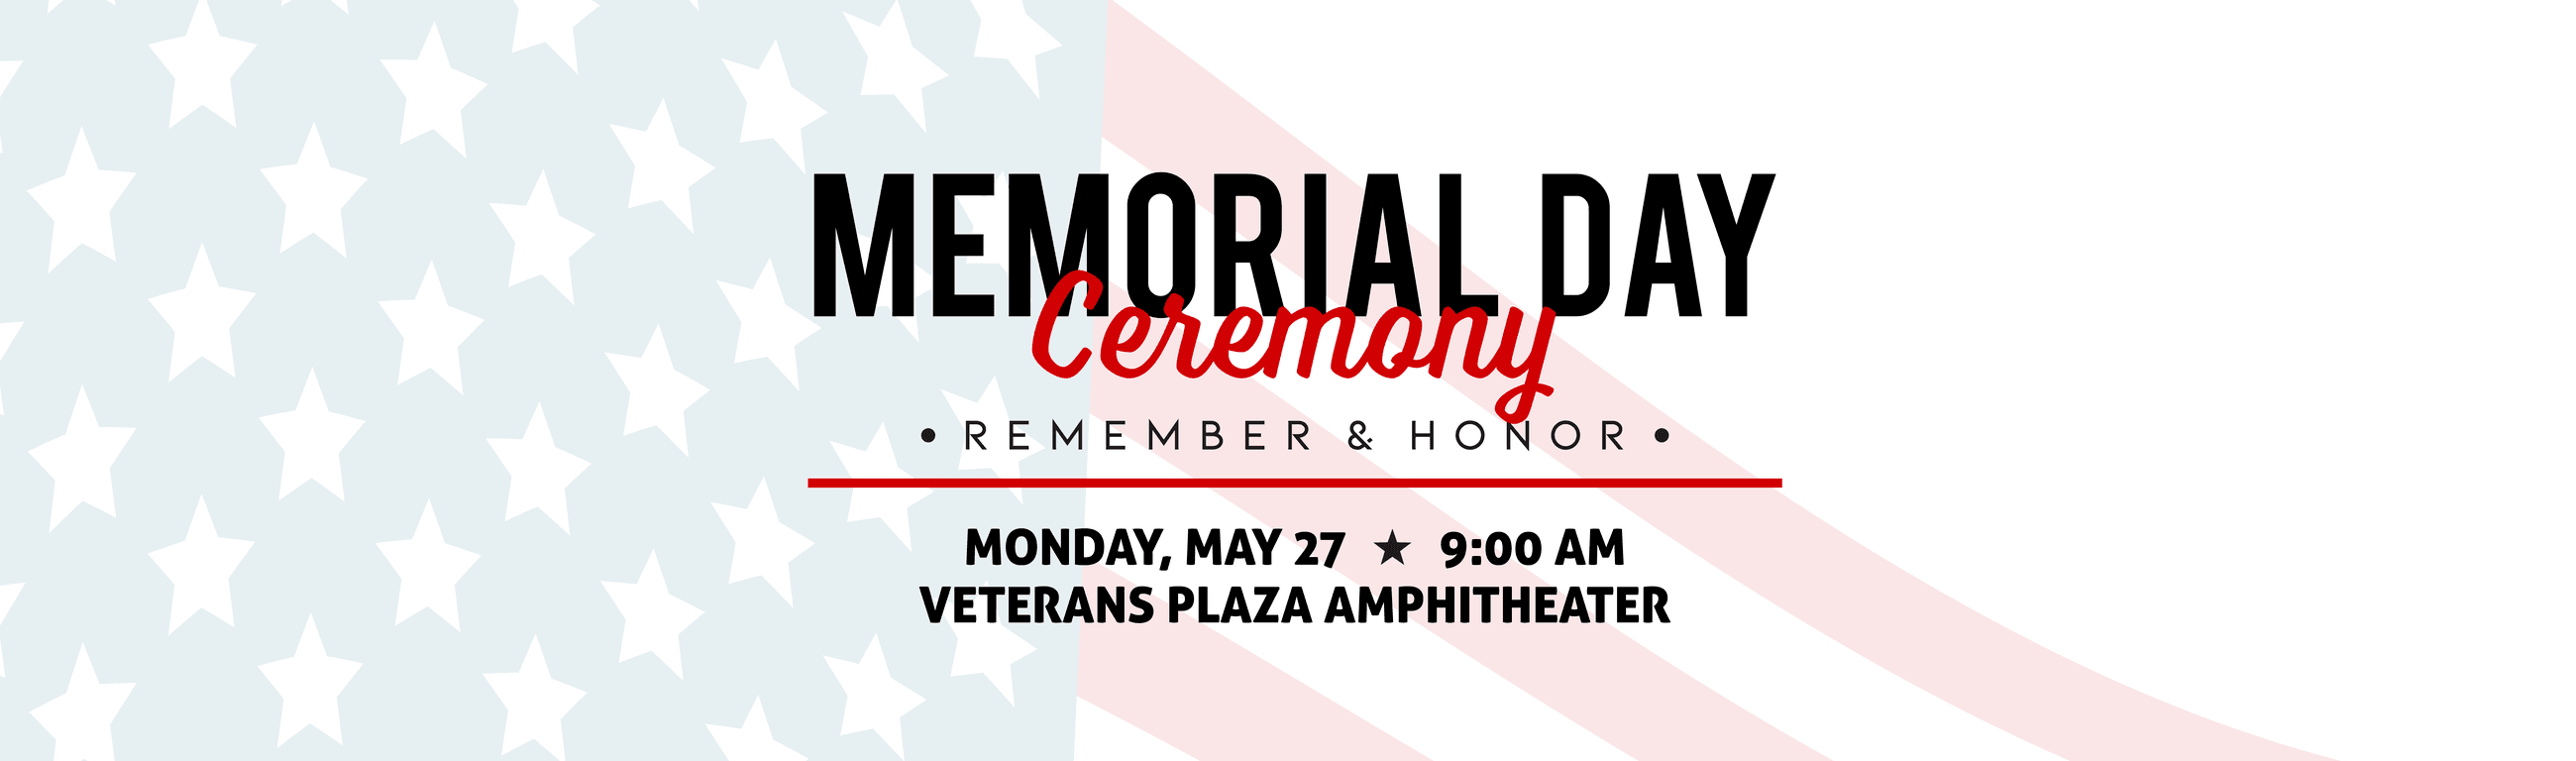 2019 Memorial Day Ceremony, Monday, May 27 at Veterans Plaza Amphitheater at 9:00 a.m.